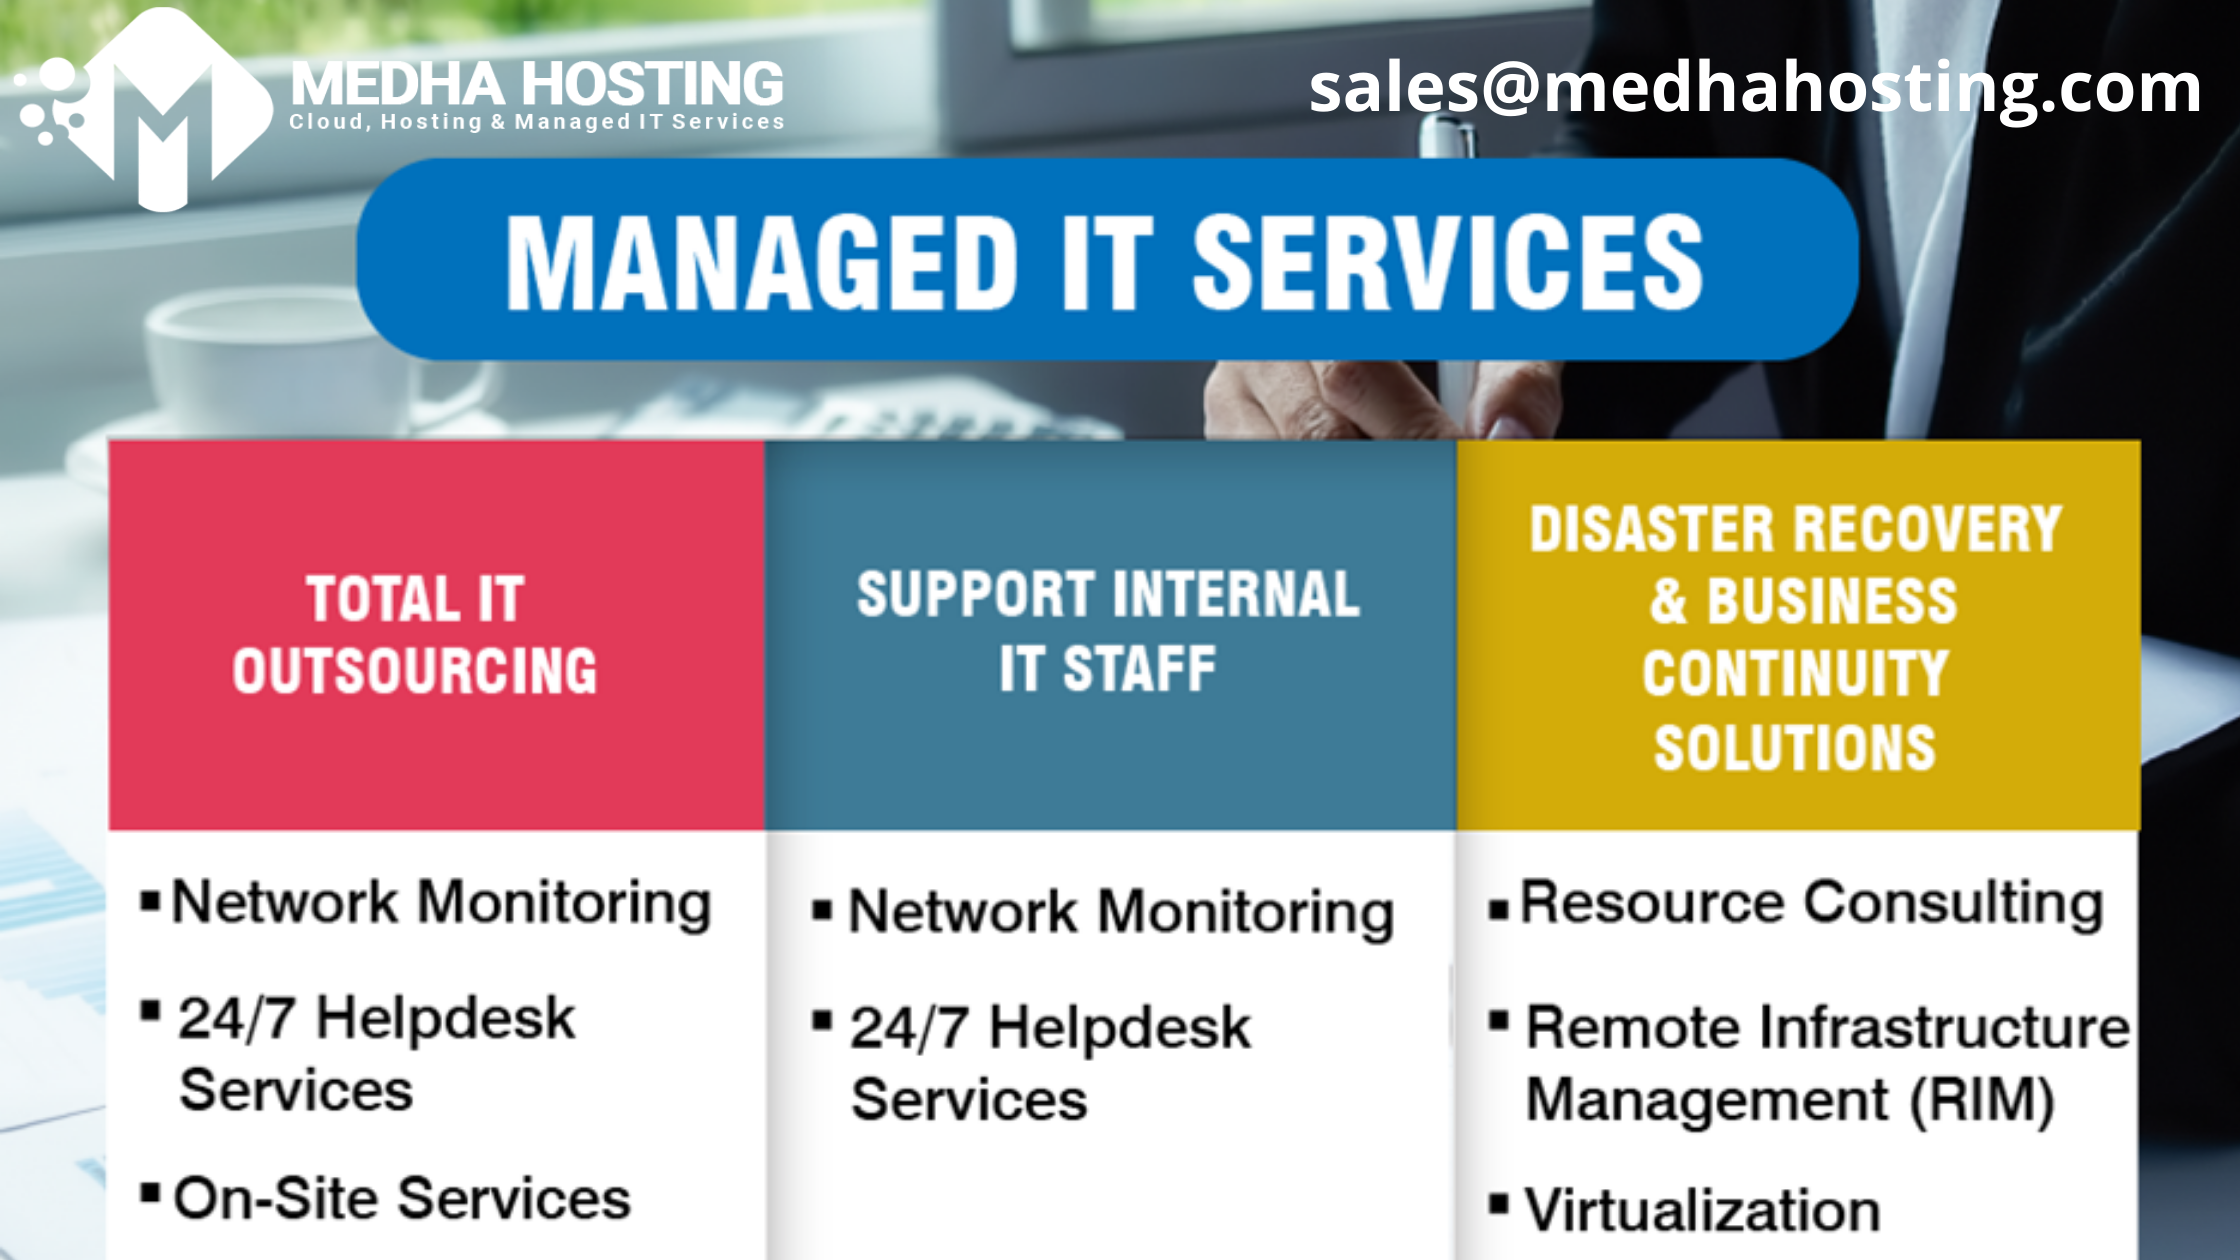 We are global, Managed IT services provider with a local approach  Reach us: @medhahosting  #manageditservices #monitoring #remotesupport #reports #productivity #remotework #professionaldevelopment